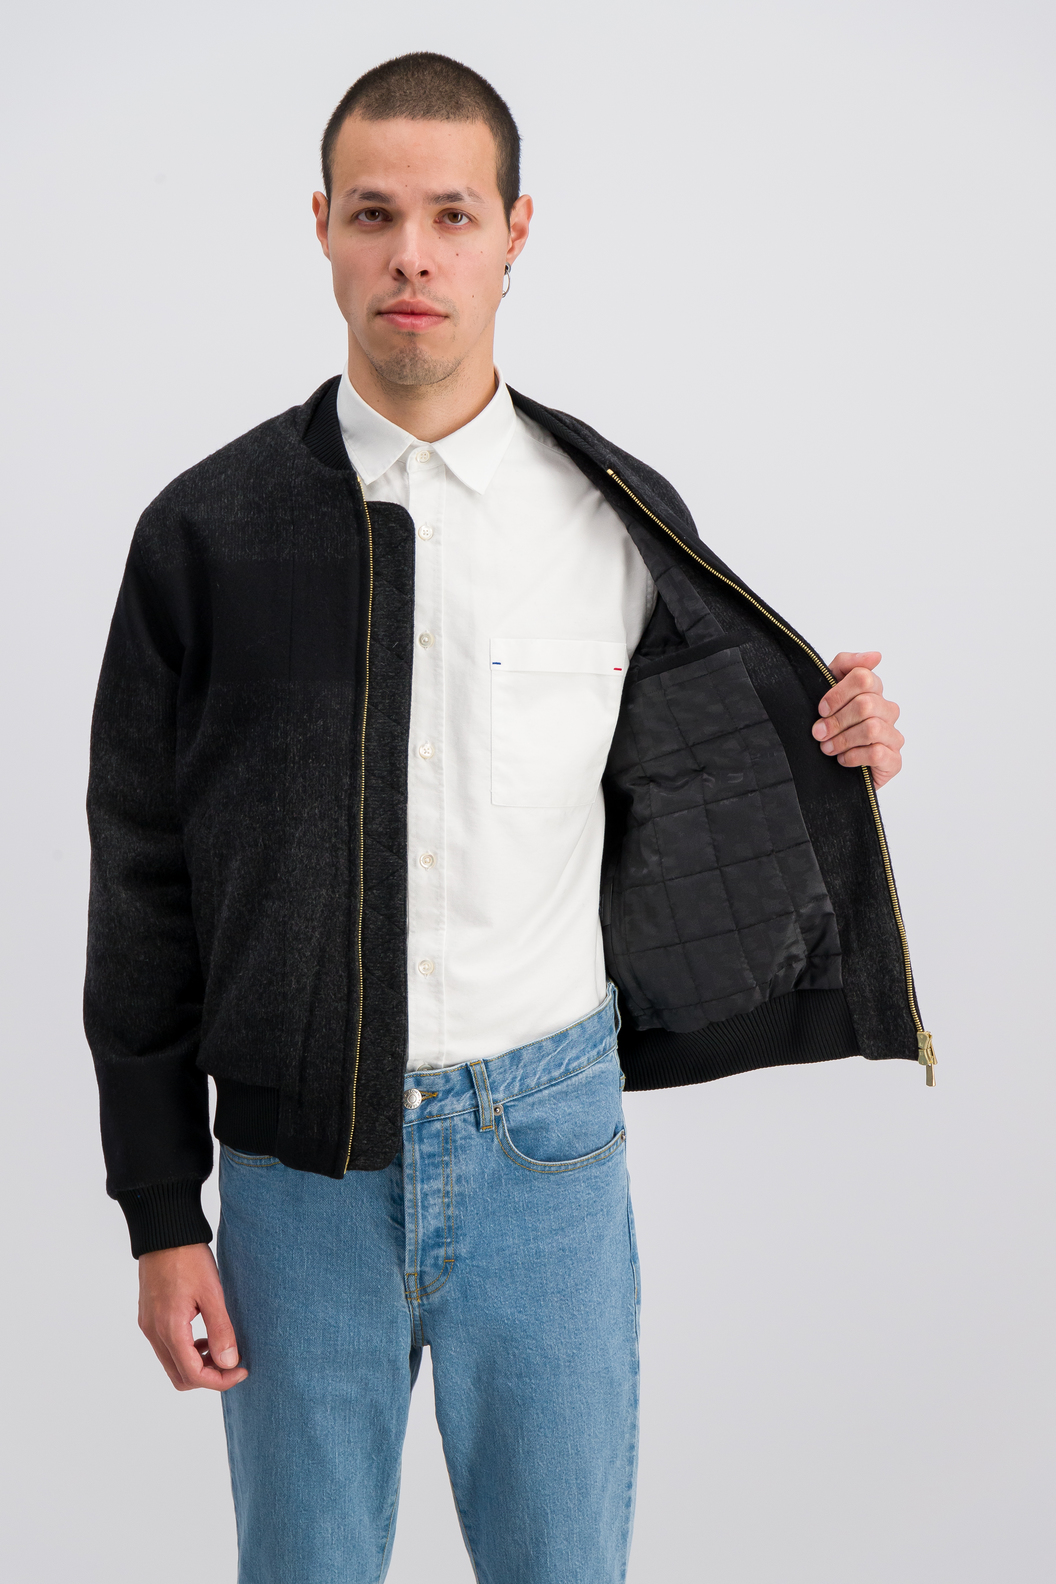 JACKET ANATOLE19-SH - Black shades